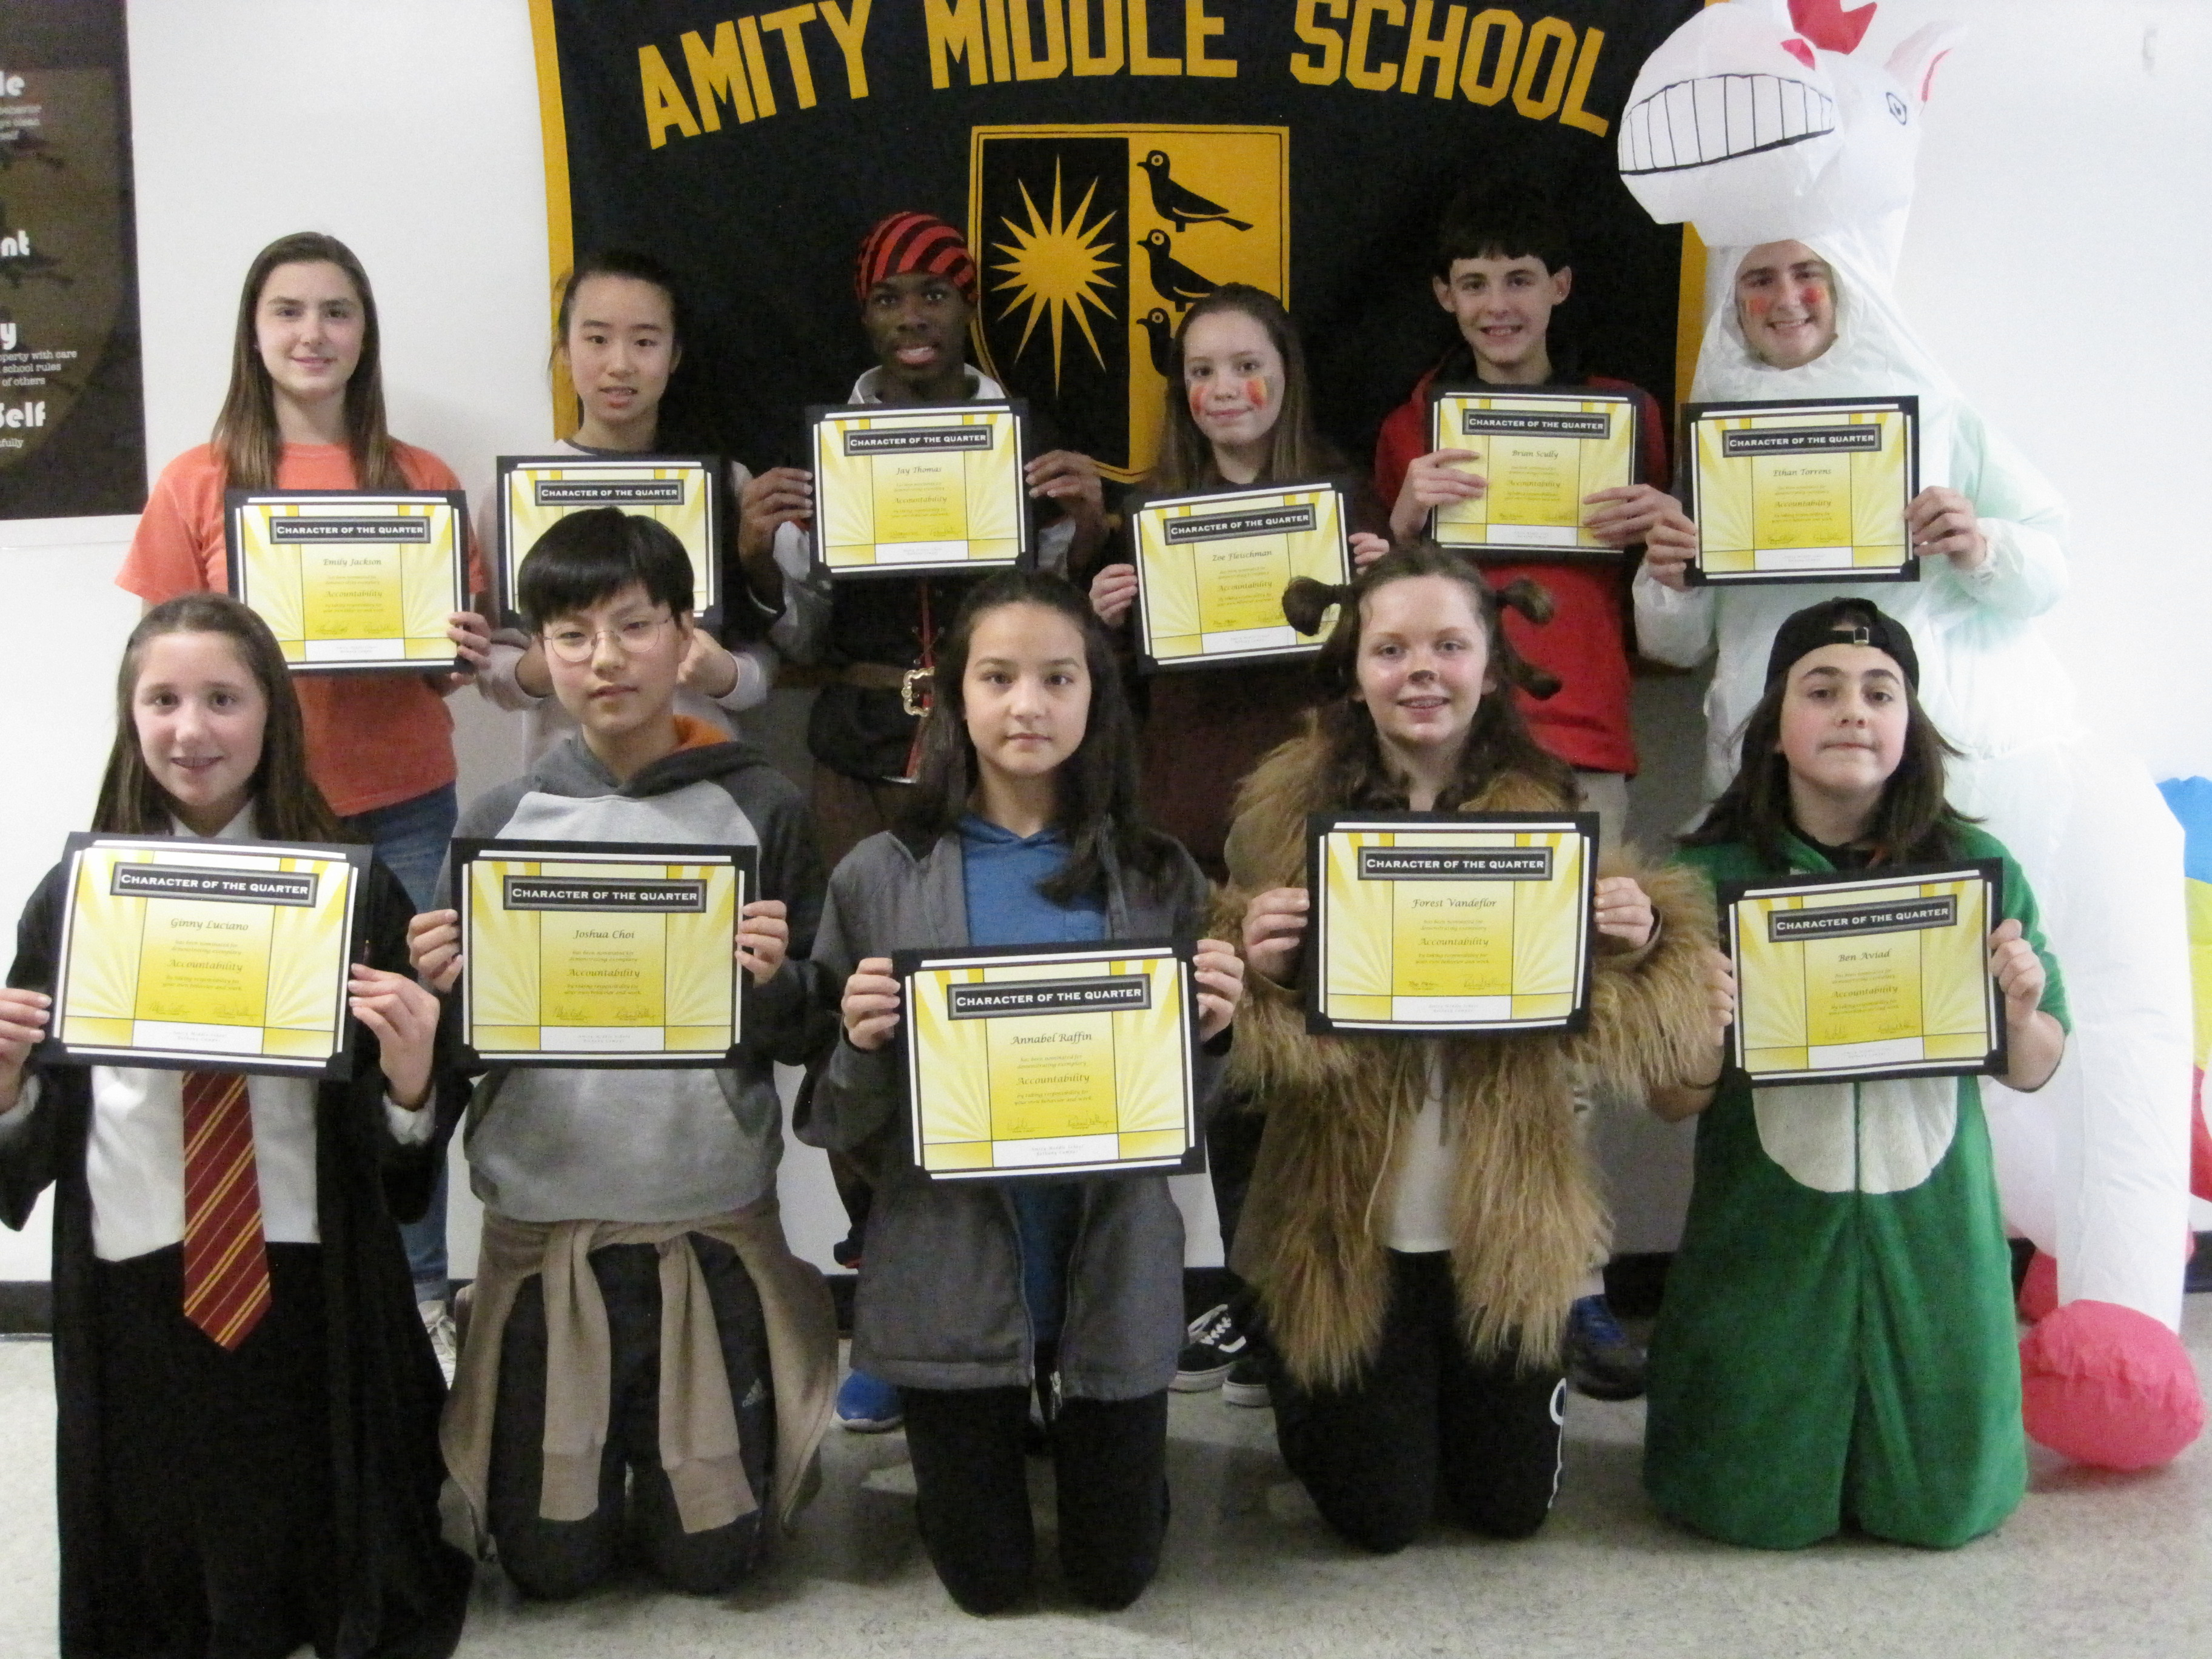 Amity Middle School in Bethany Character of the 1st Quarter Award